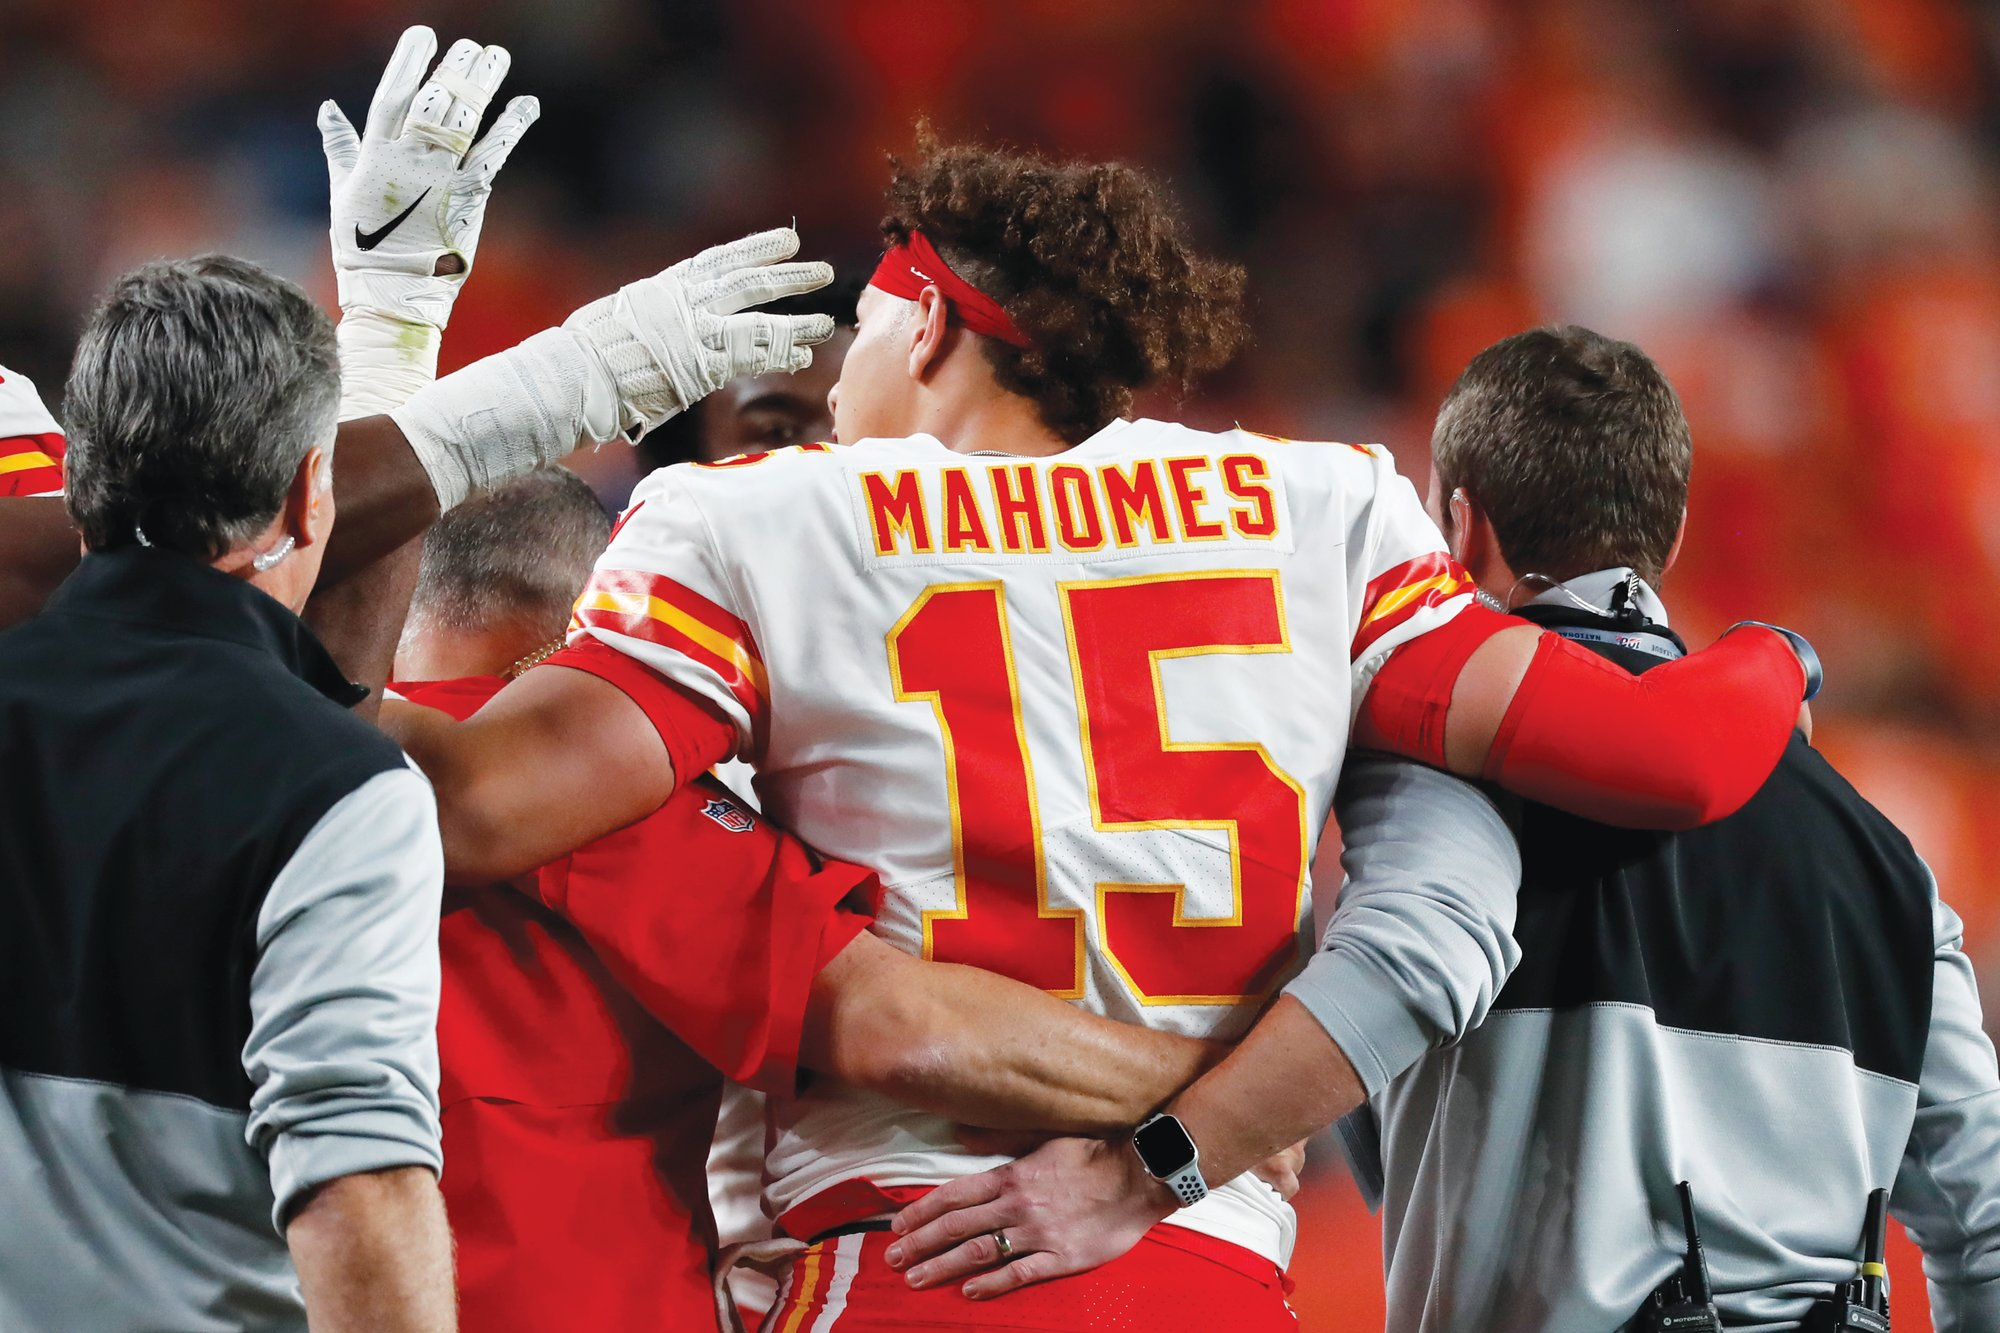 Kansas City quarterback Patrick Mahomes (15) is helped off the field after dislocating his right kneecap in the Chiefs' 30-6 win over Denver on Thursday in Denver. Mahomes is expected to miss between four to six weeks.